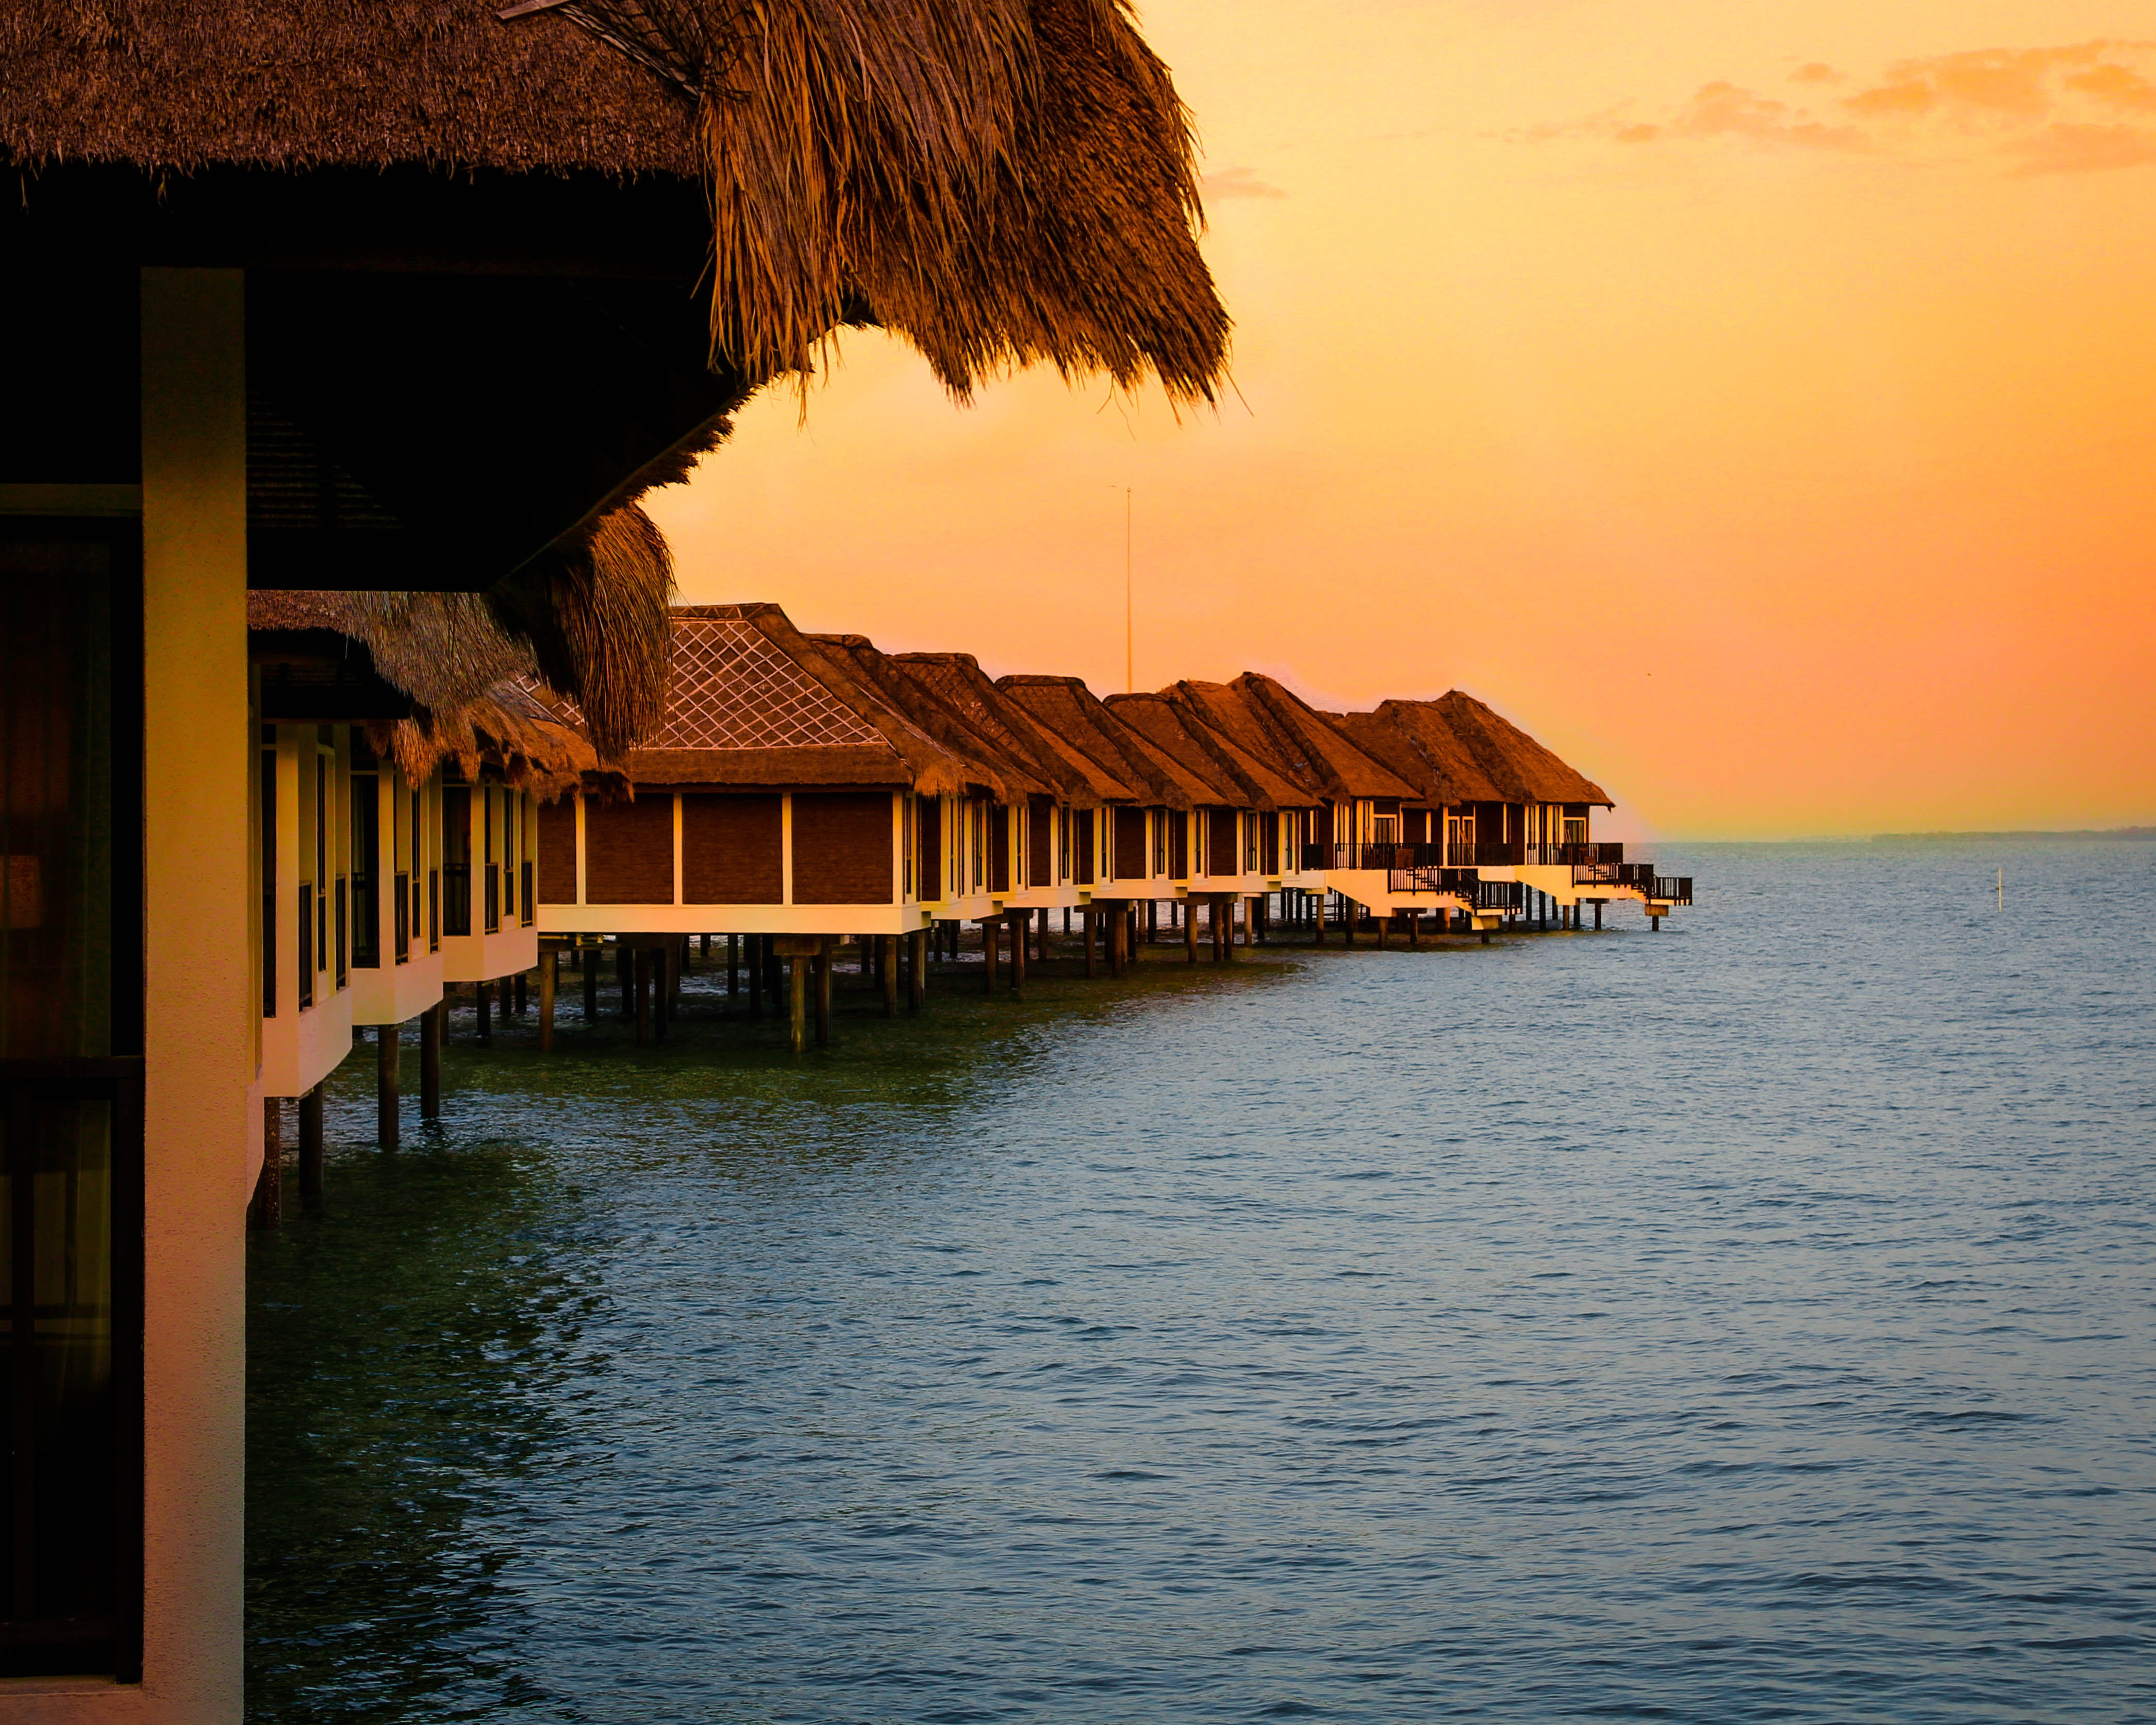 Architectural Photography of Brown Stilt Houses on Top of Sea Under Orange Sky